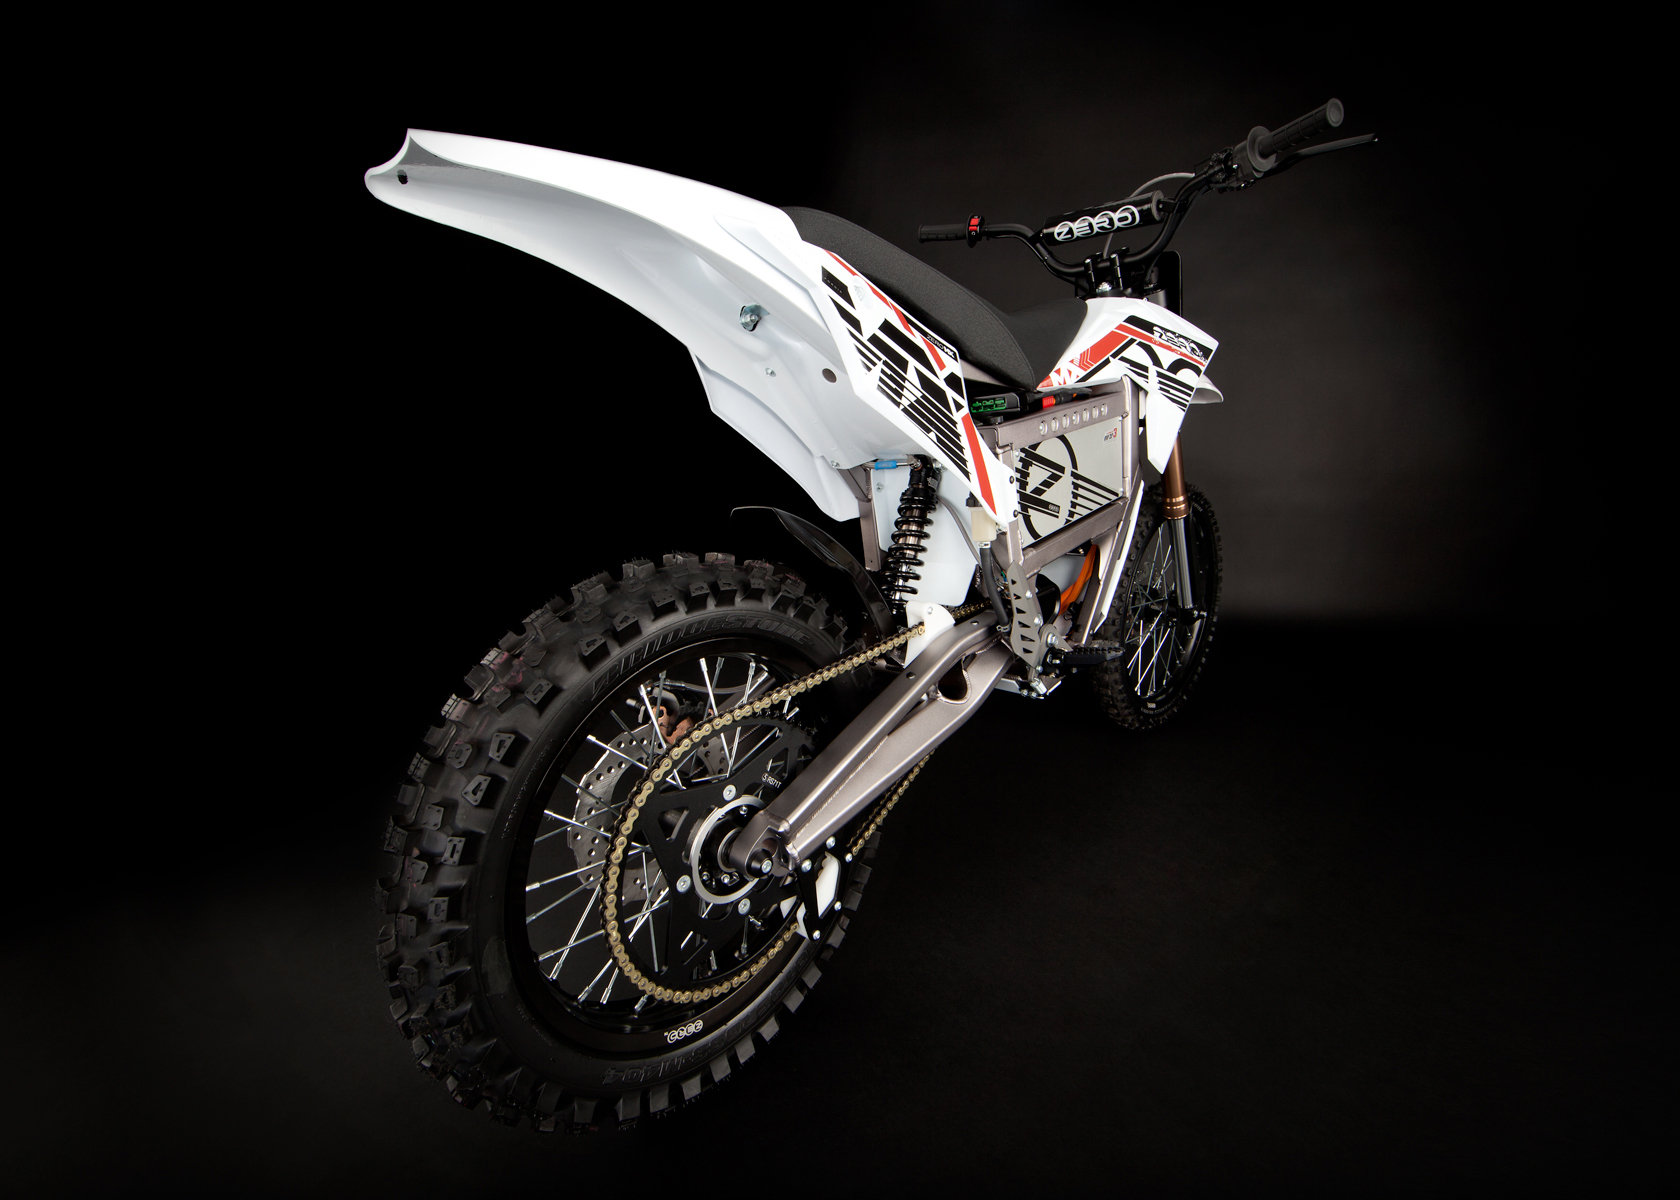 2012 Zero MX Electric Motorcycle: Angle Right, Rear View, Wide